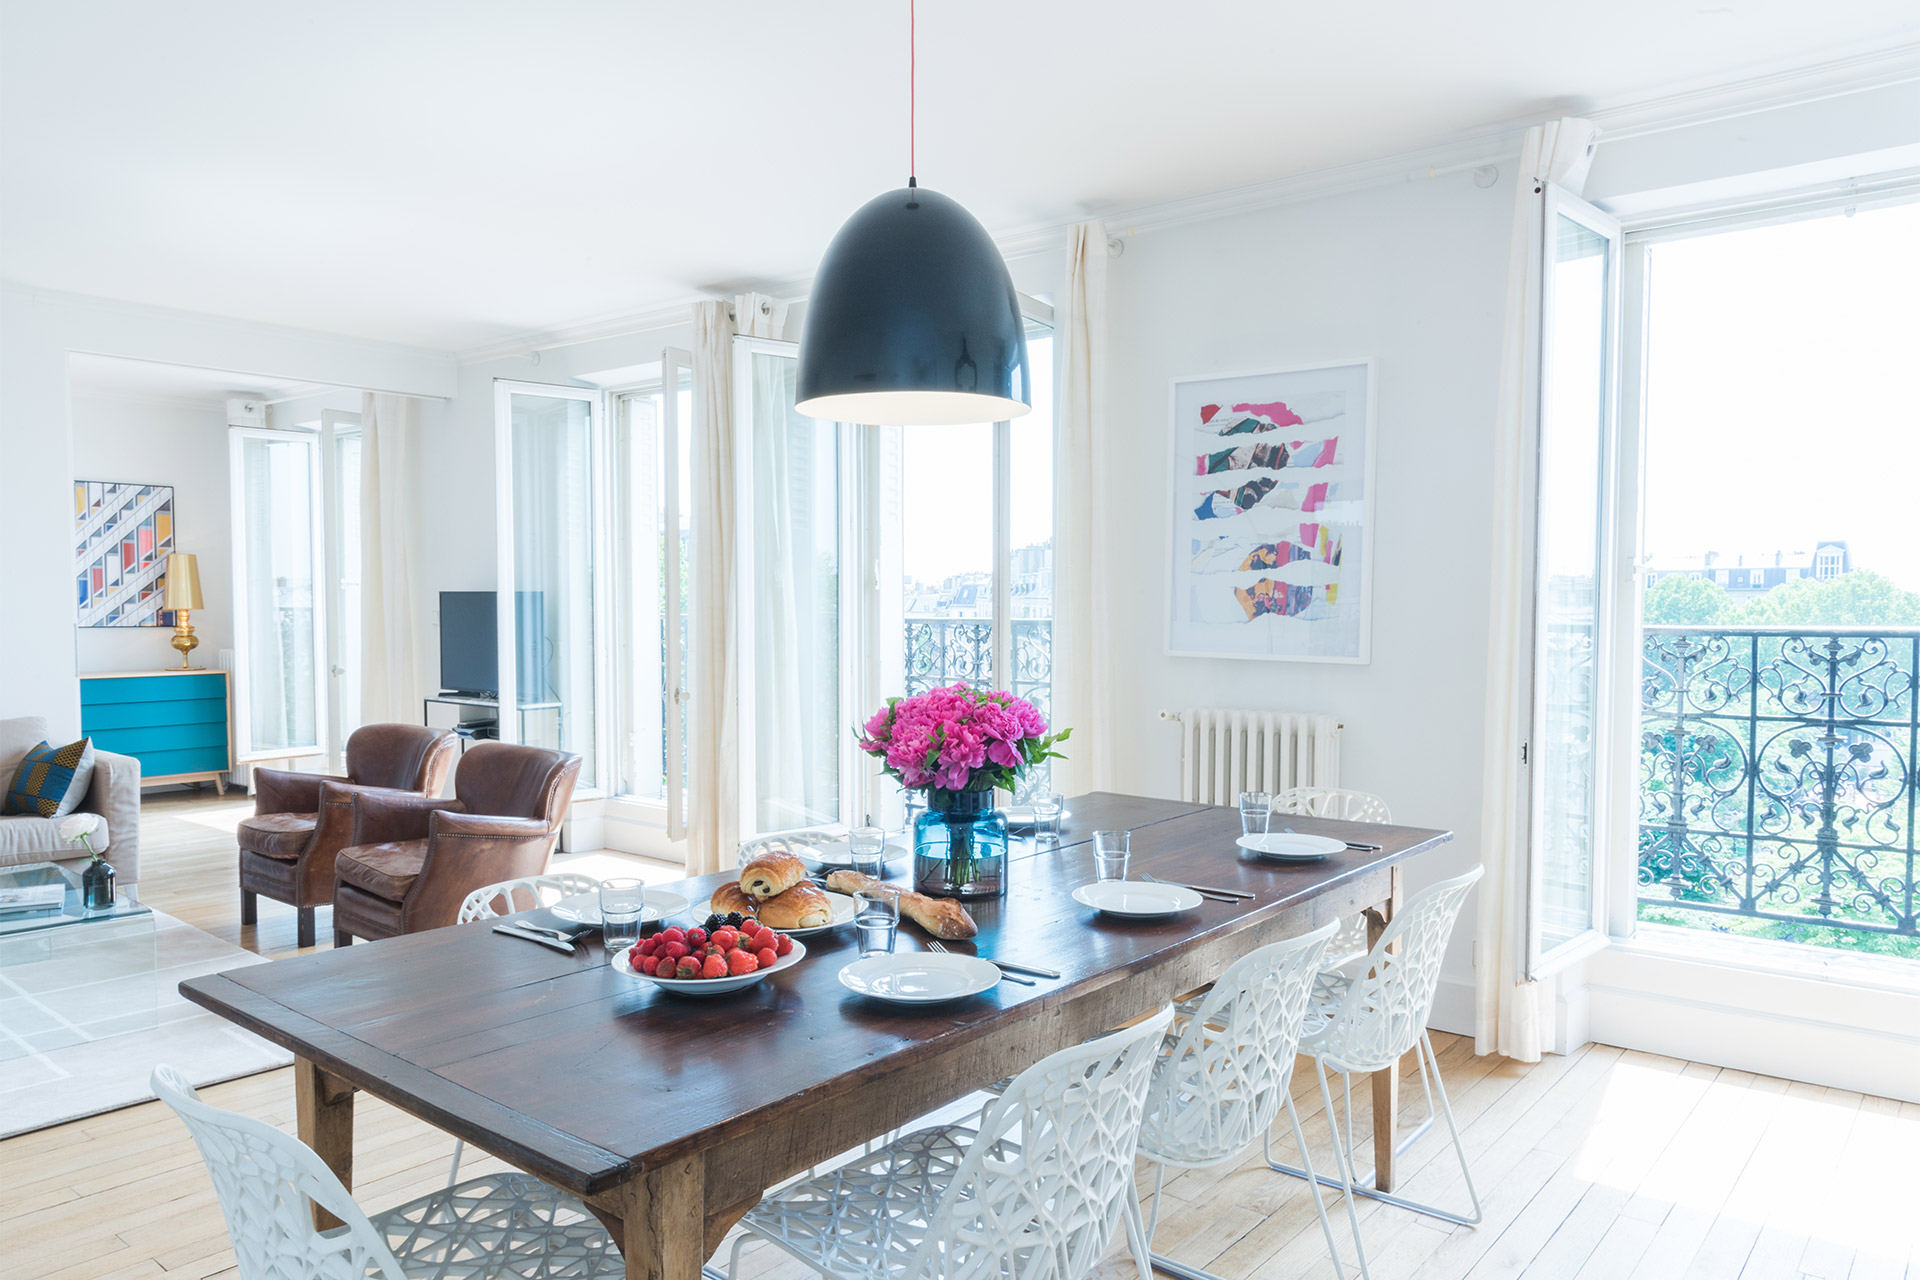 La Table Rouge Rennes Spacious Three Bedroom Vacation Rental In The Artistic Montmartre Area